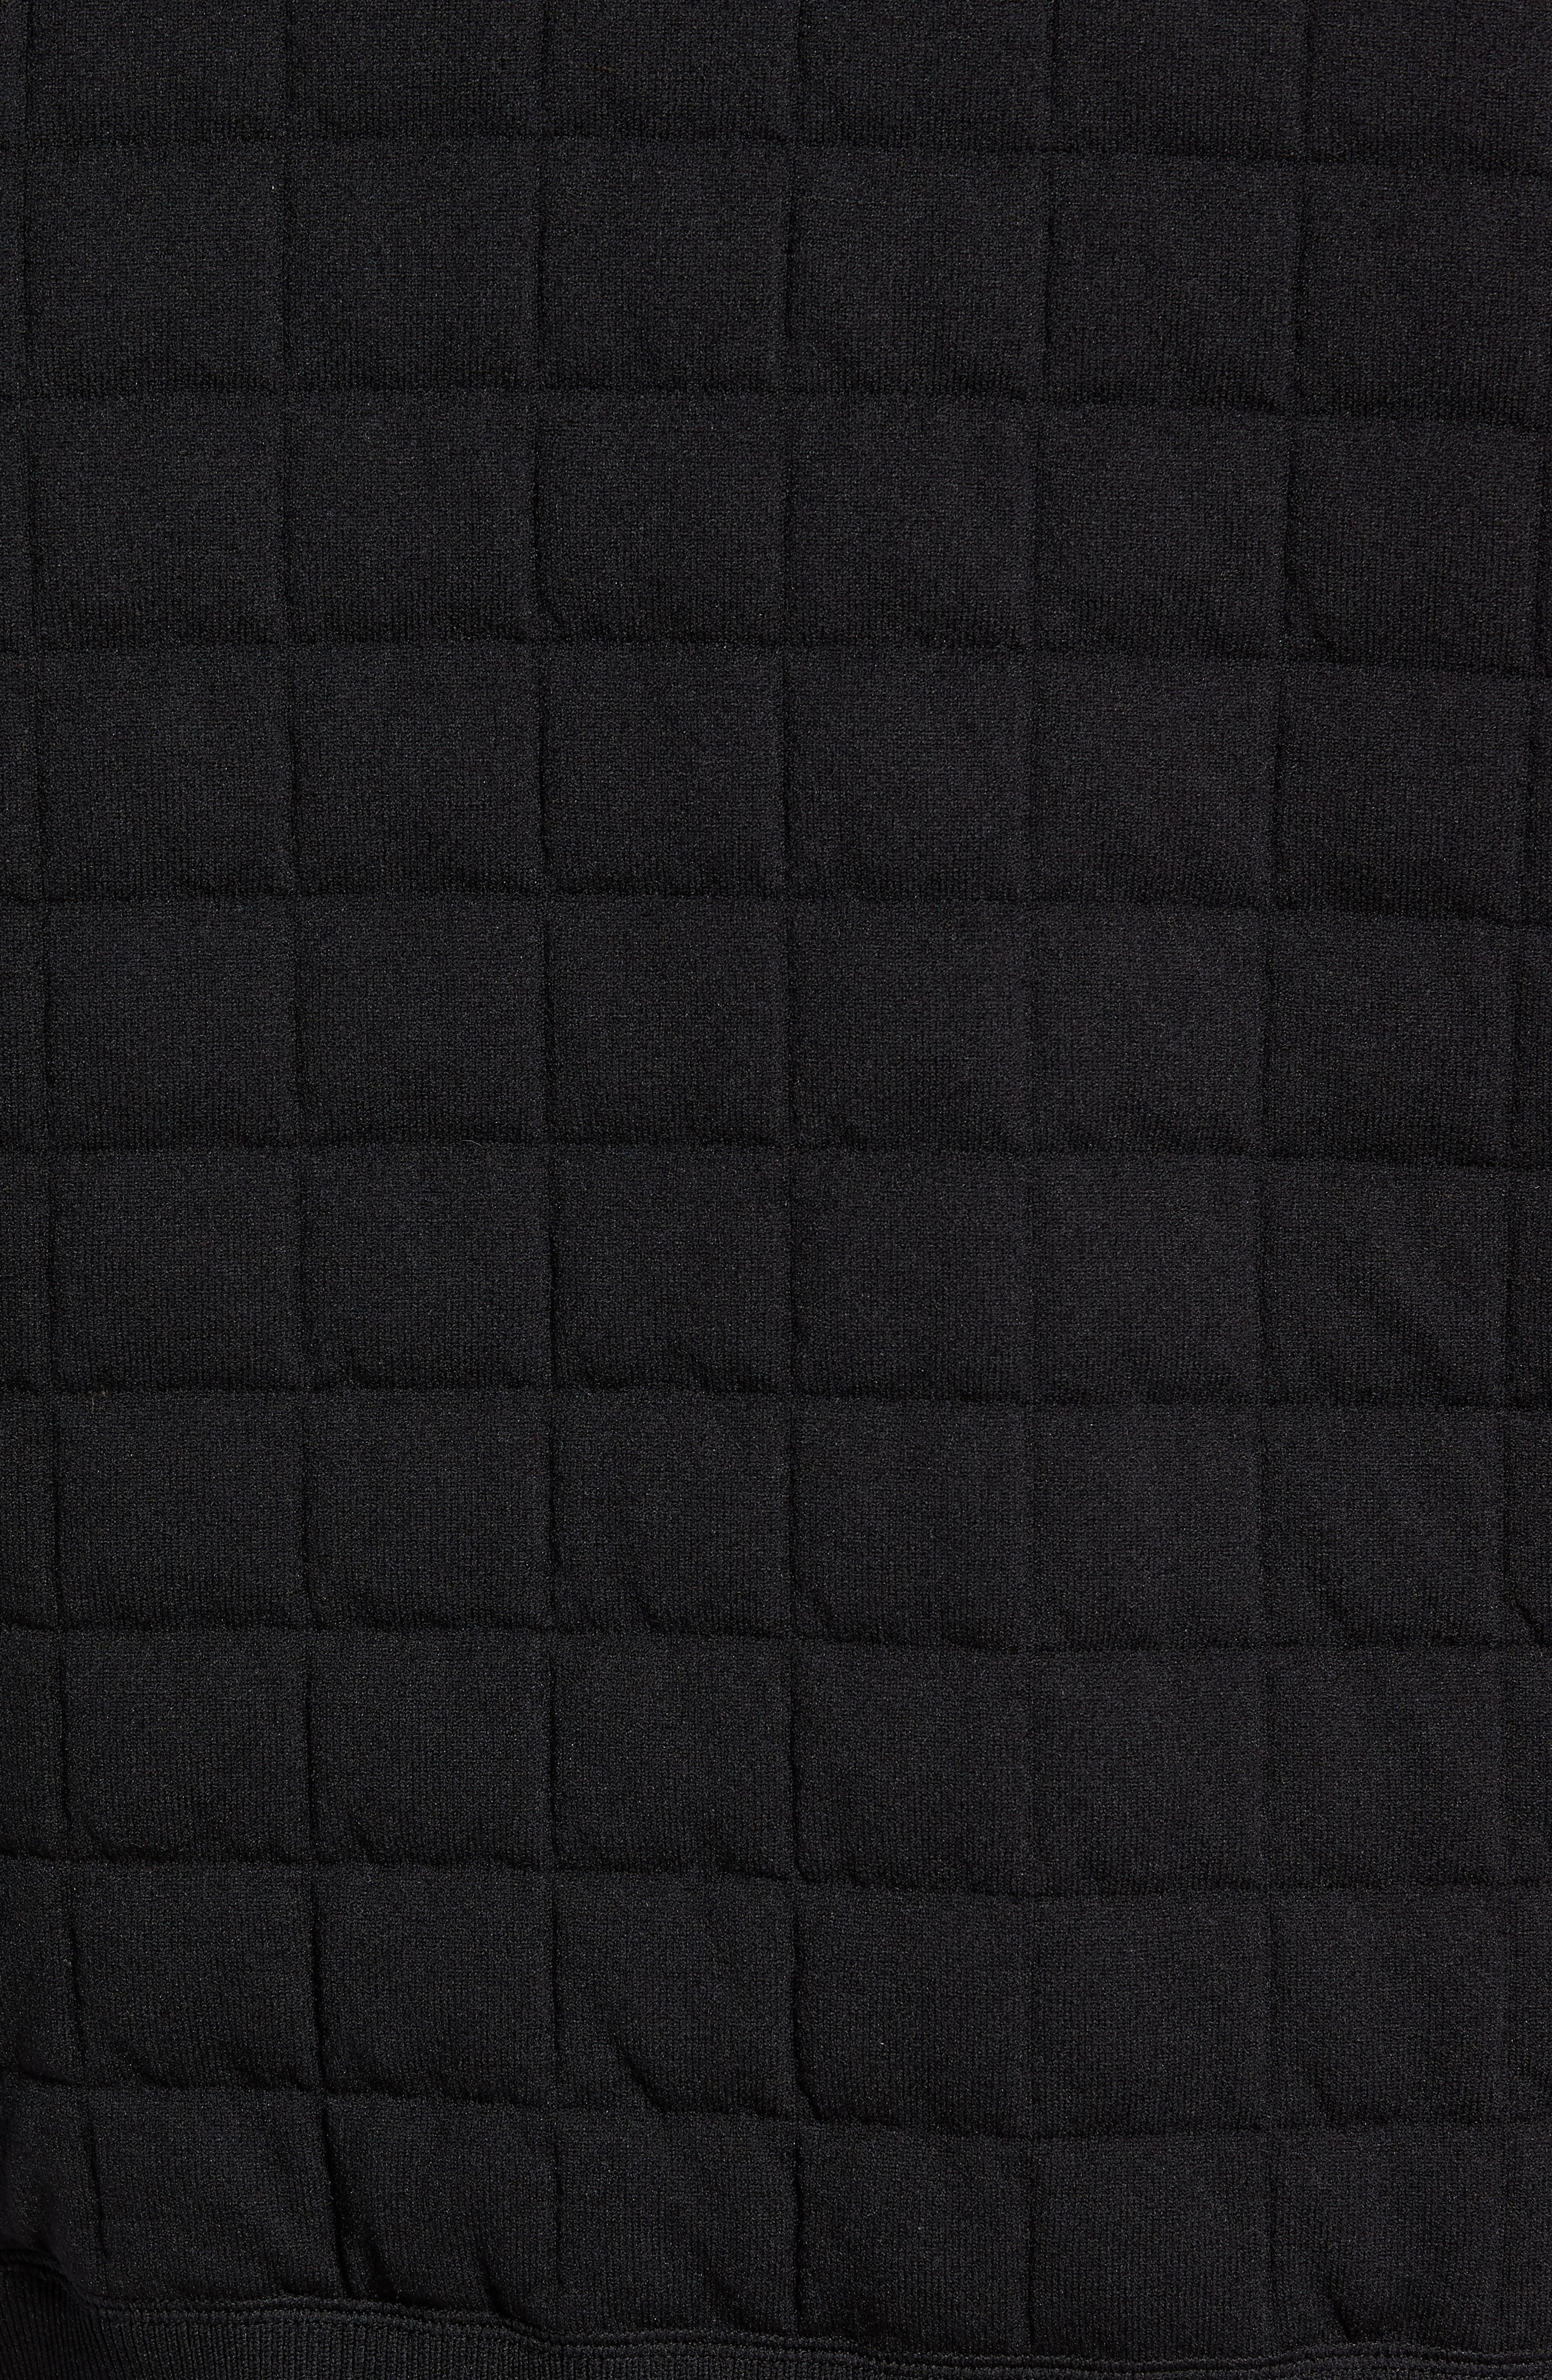 Quilted Bomber Jacket,                             Alternate thumbnail 6, color,                             001